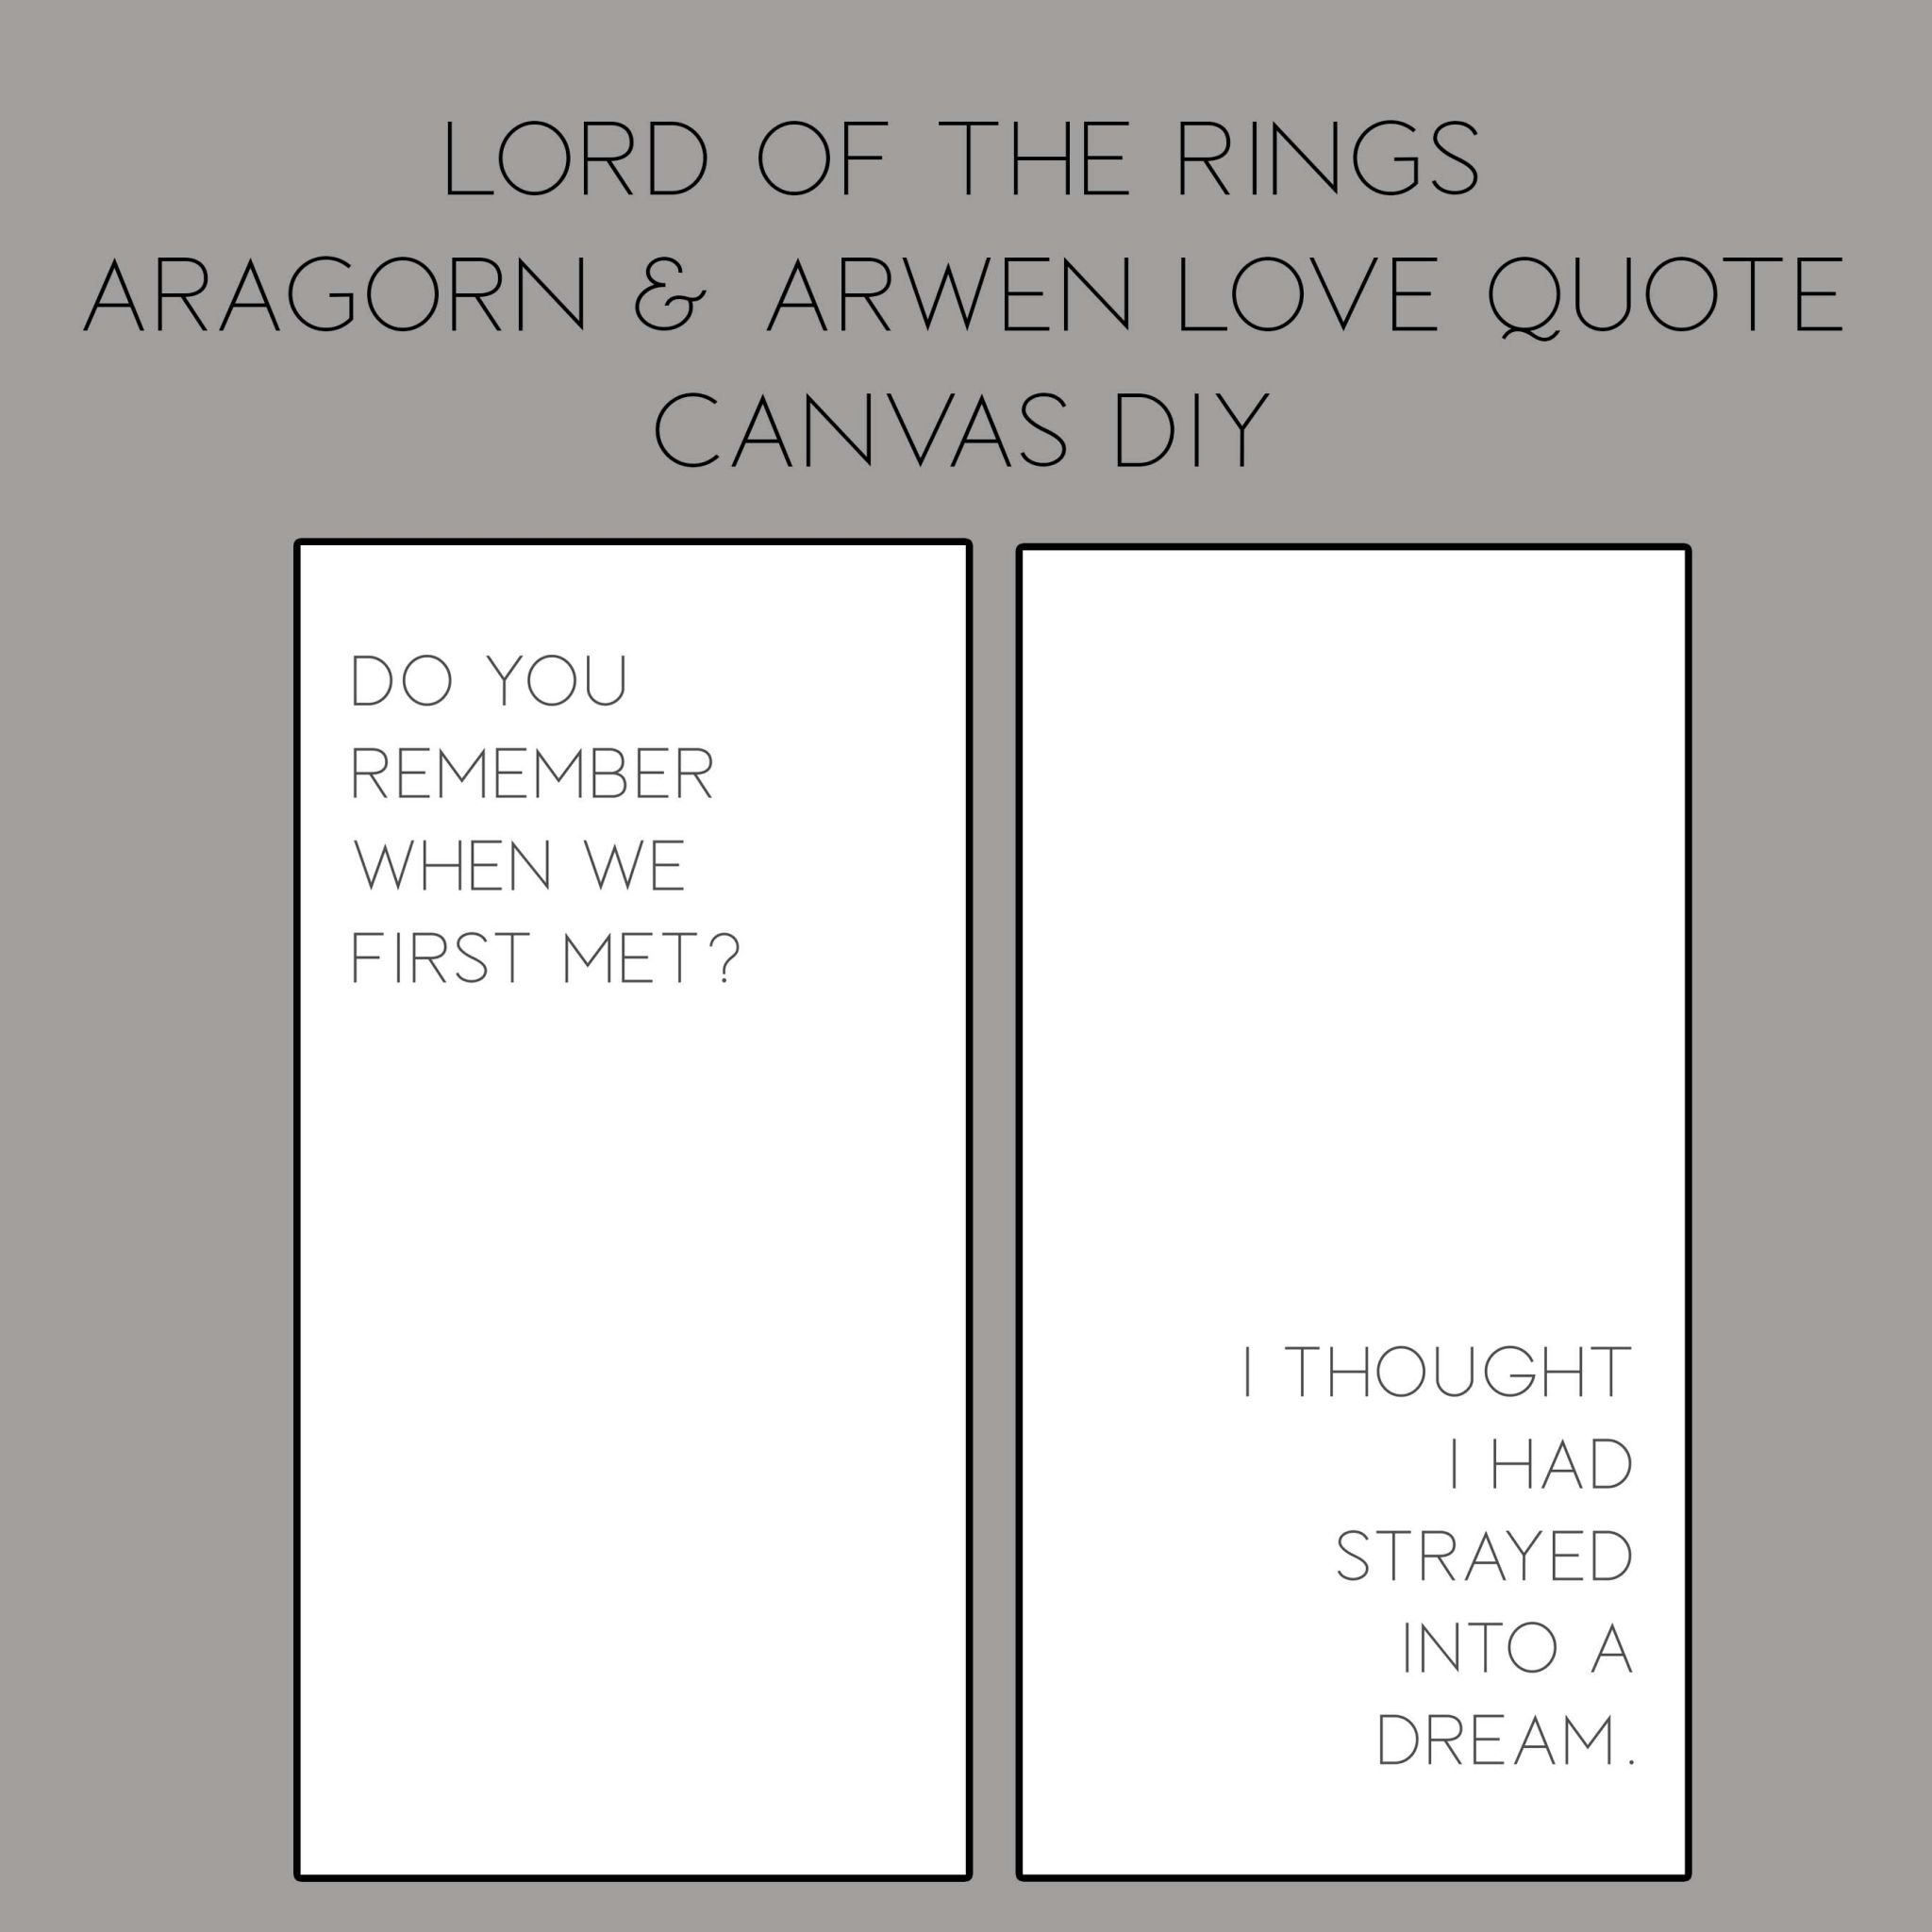 Lord Of The Rings Diy Arwen And Aragorn Canvas Quote Popcorner